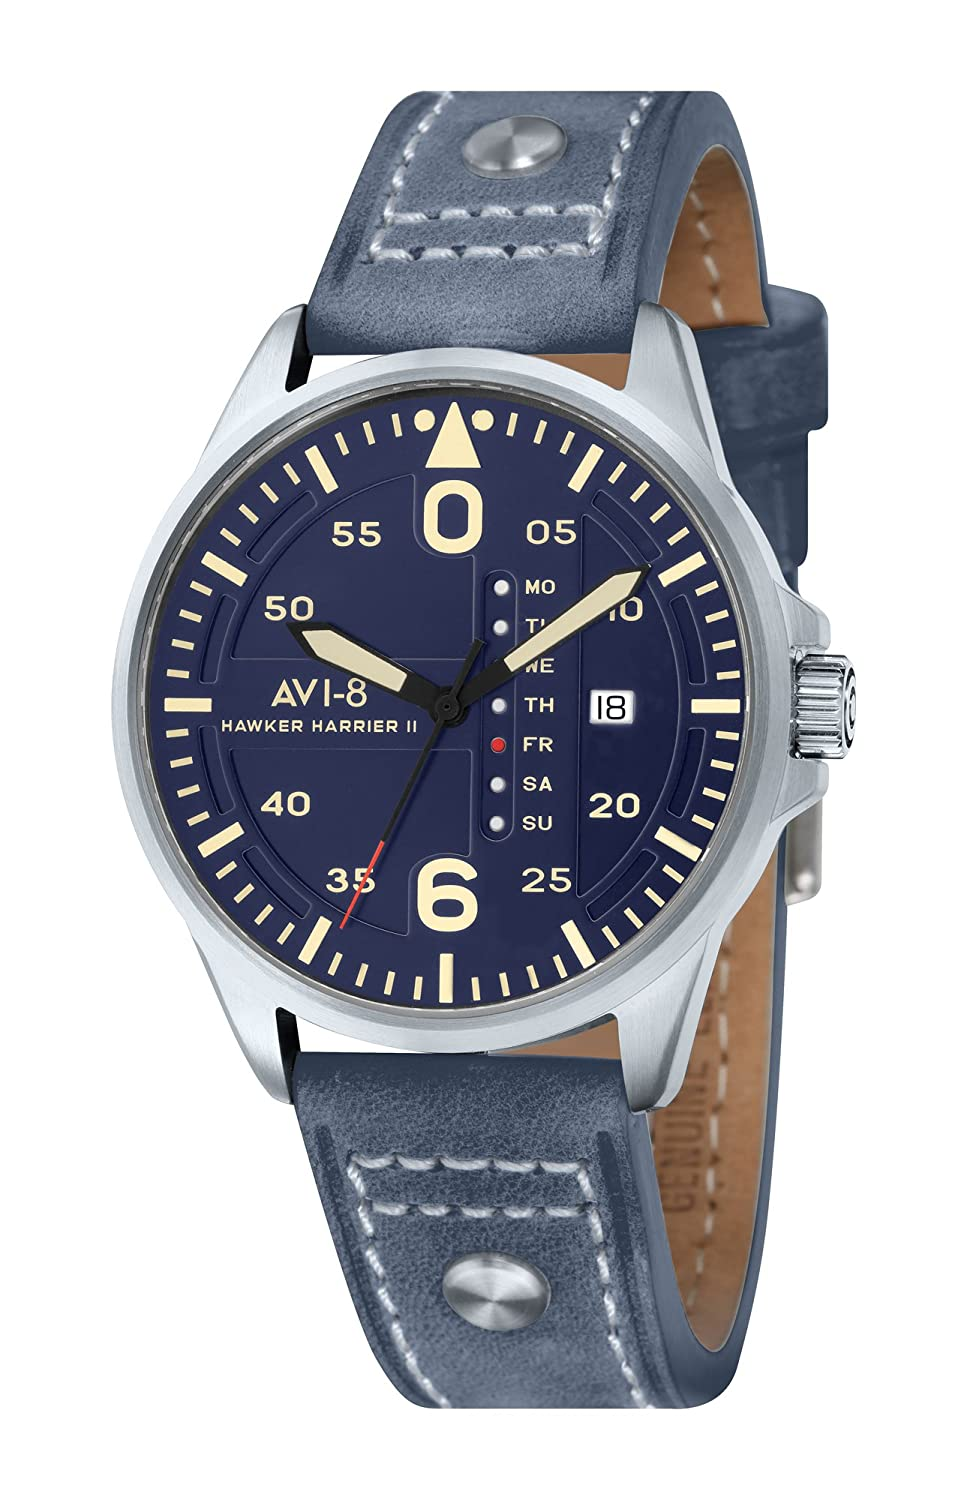 AVI-8 Hawker Harrier II Retrograde Herrenquarzuhr in blau mit blauem analogen Zifferblatt und blauem Lederarmband (AV-